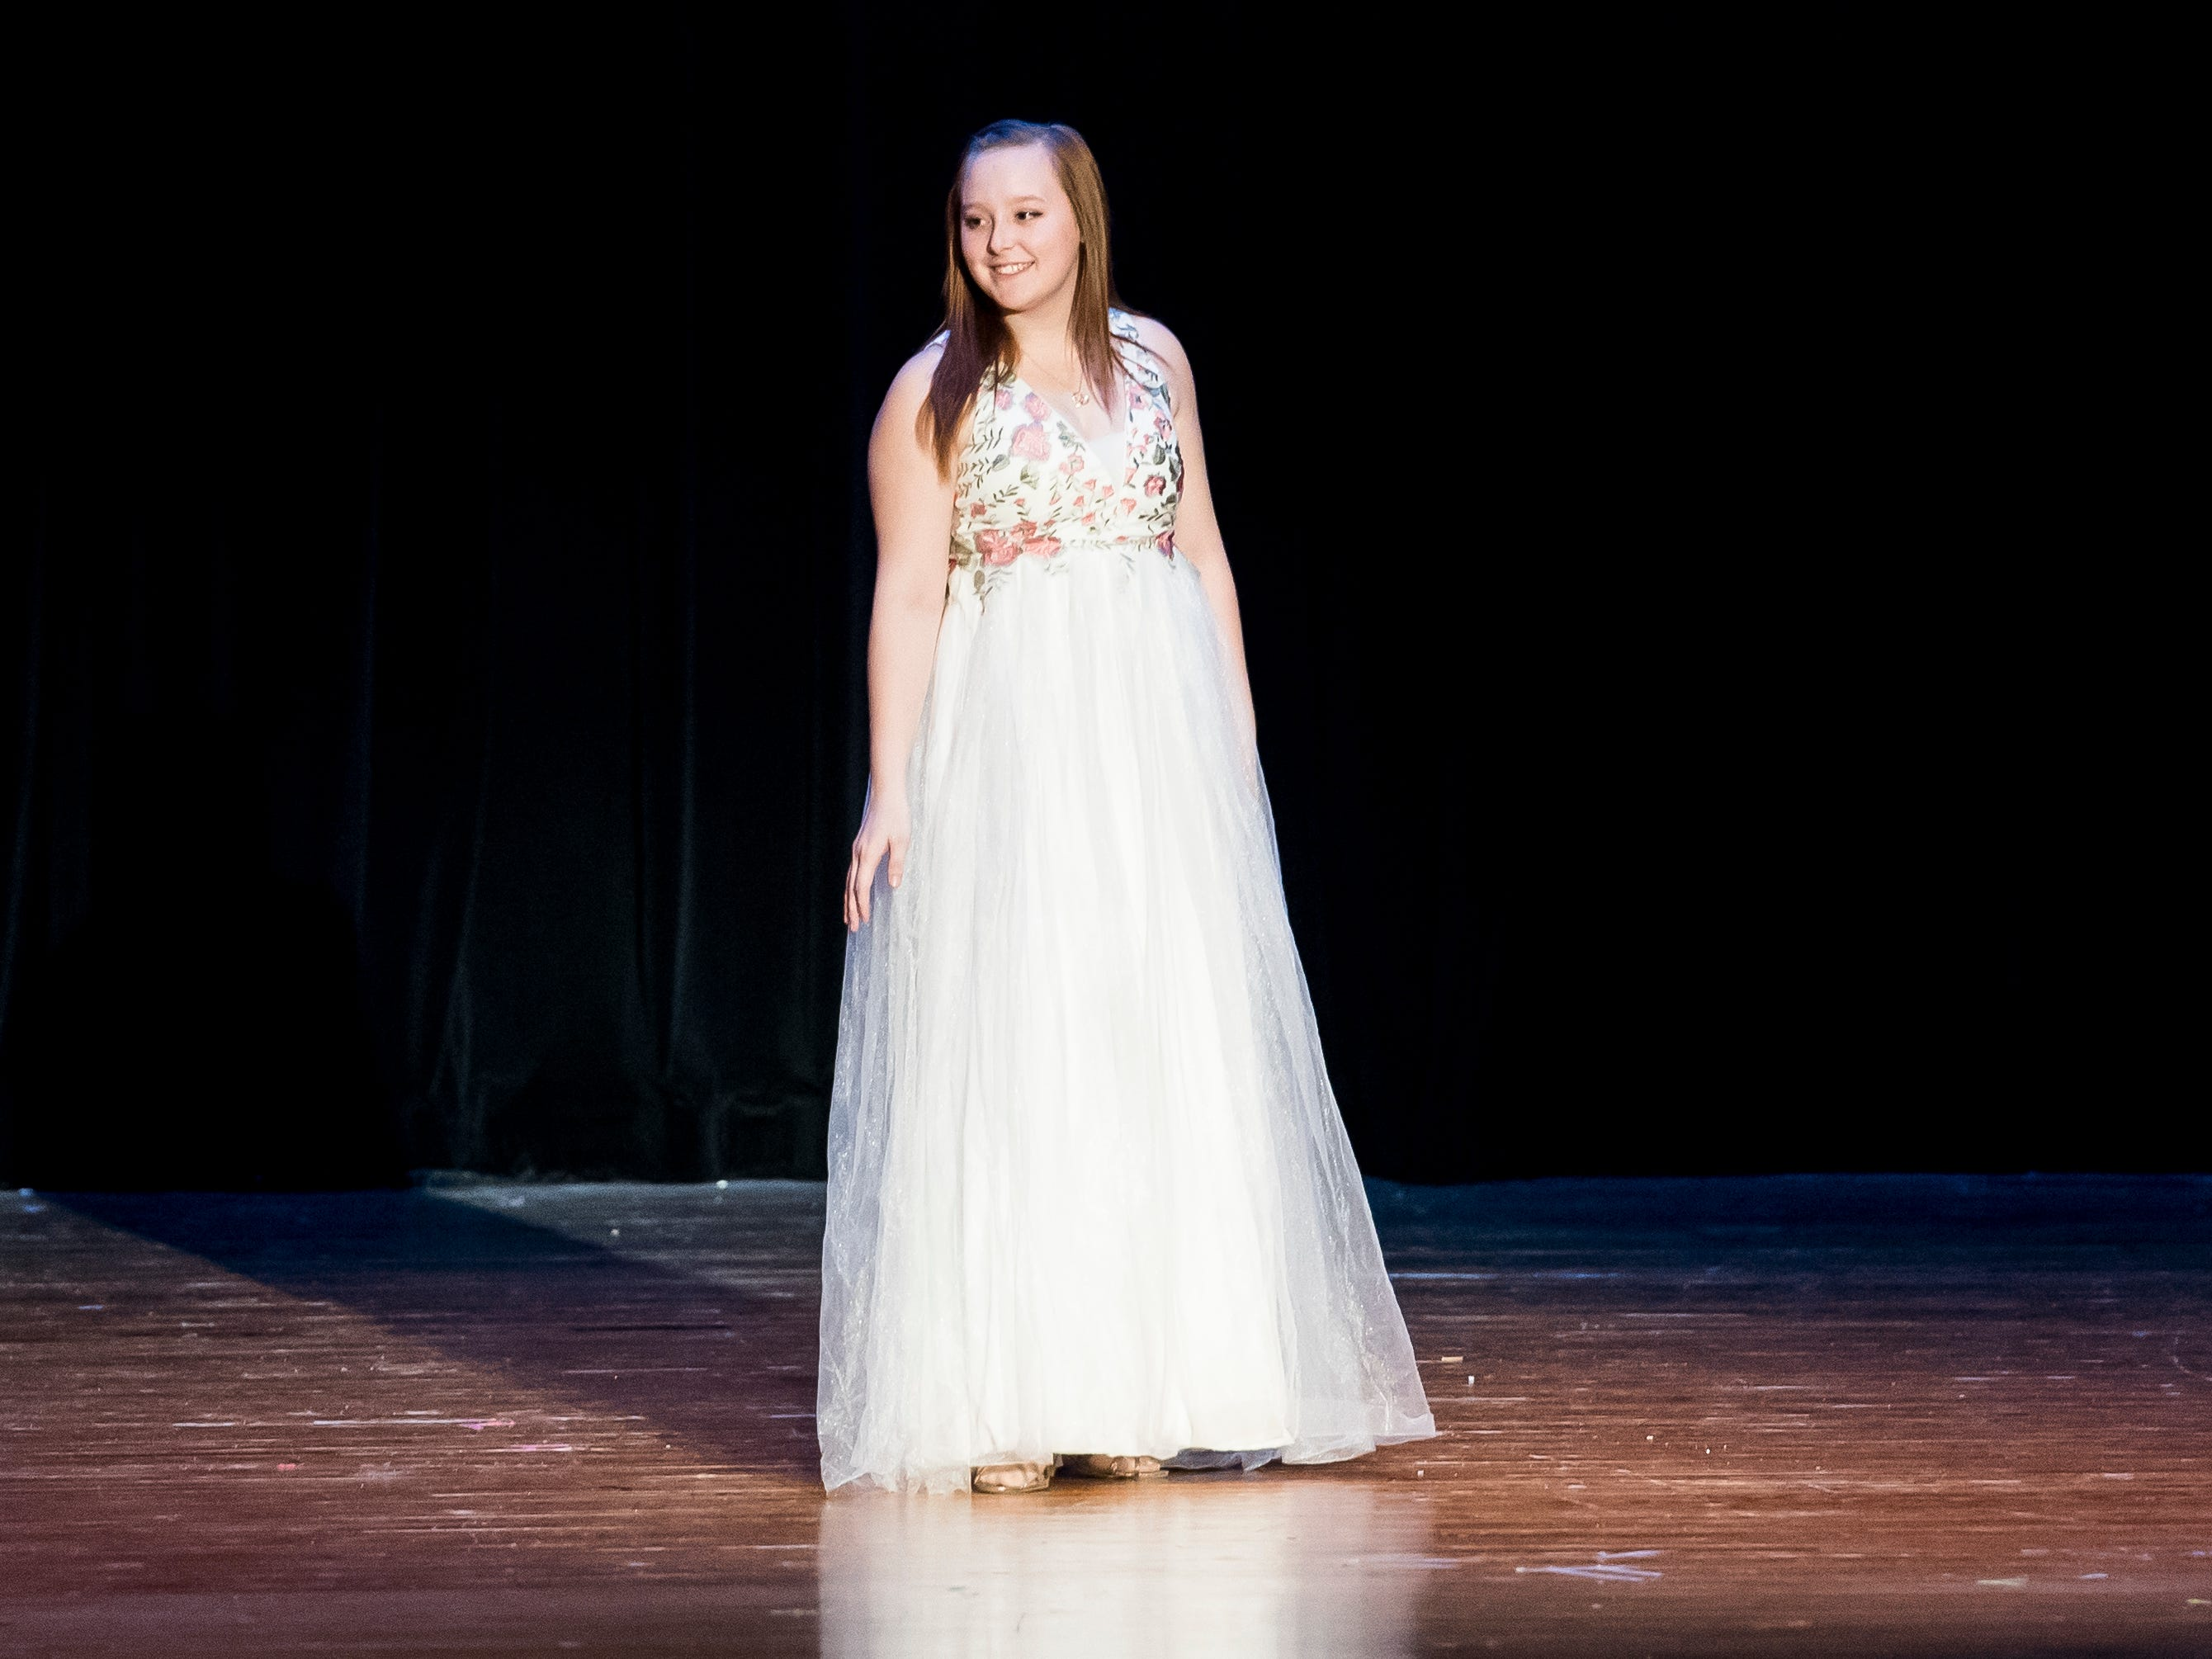 Alissa Wagaman walks on stage during the evening gown competition in the 50th Miss Hanover Area pageant on Monday, October 22, 2018.